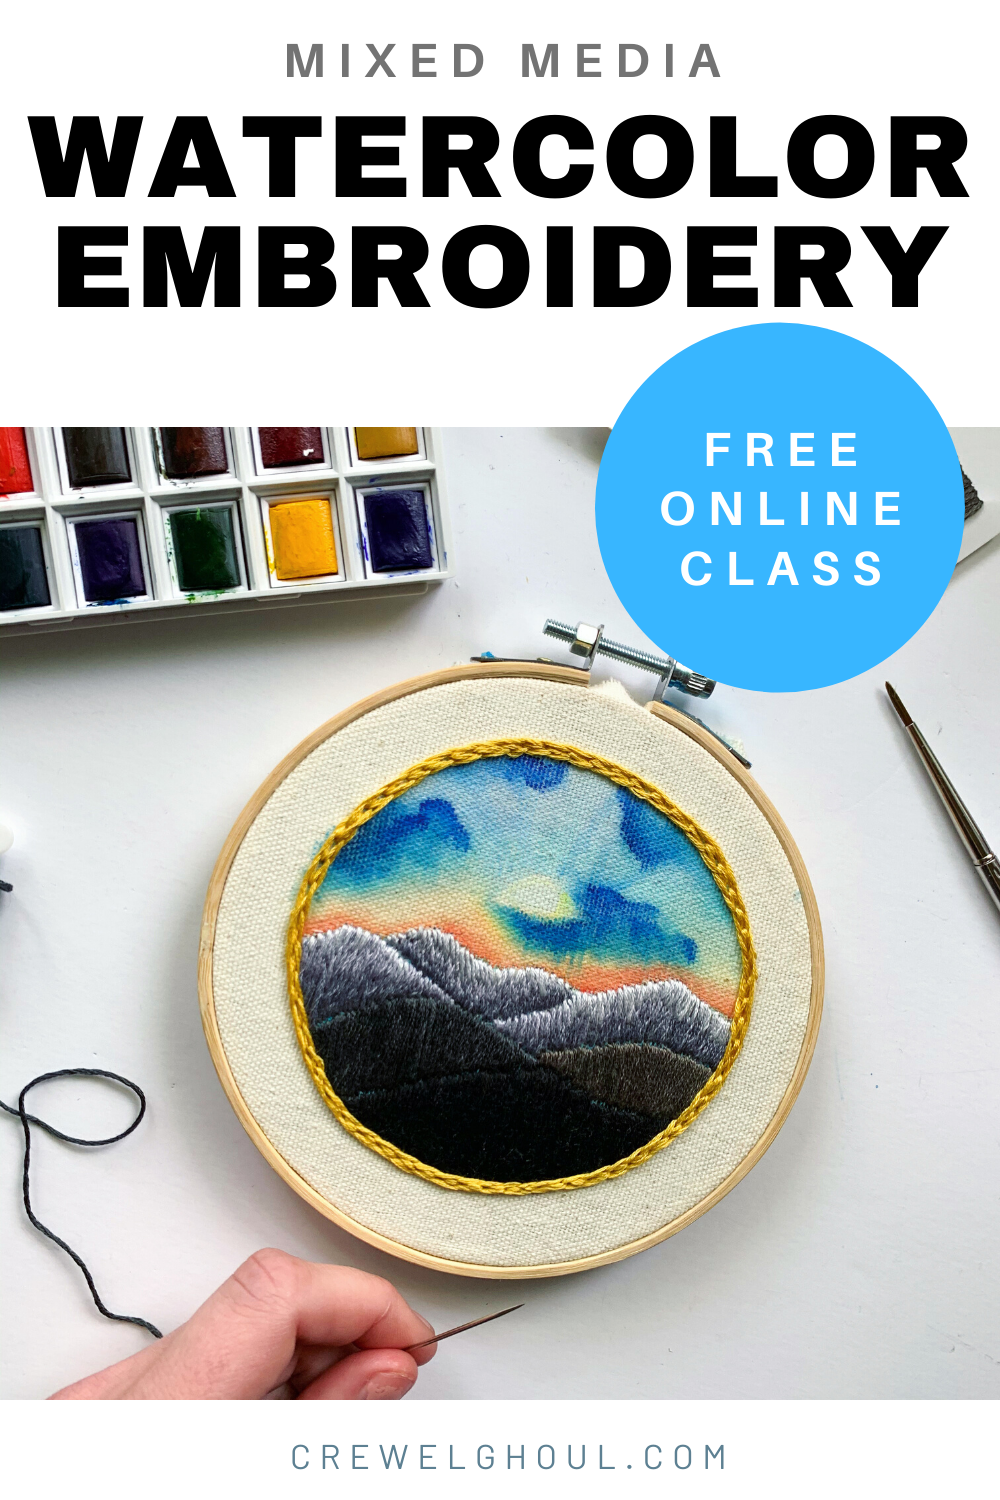 mixed media watercolor embroidery free embroidery pattern and online class